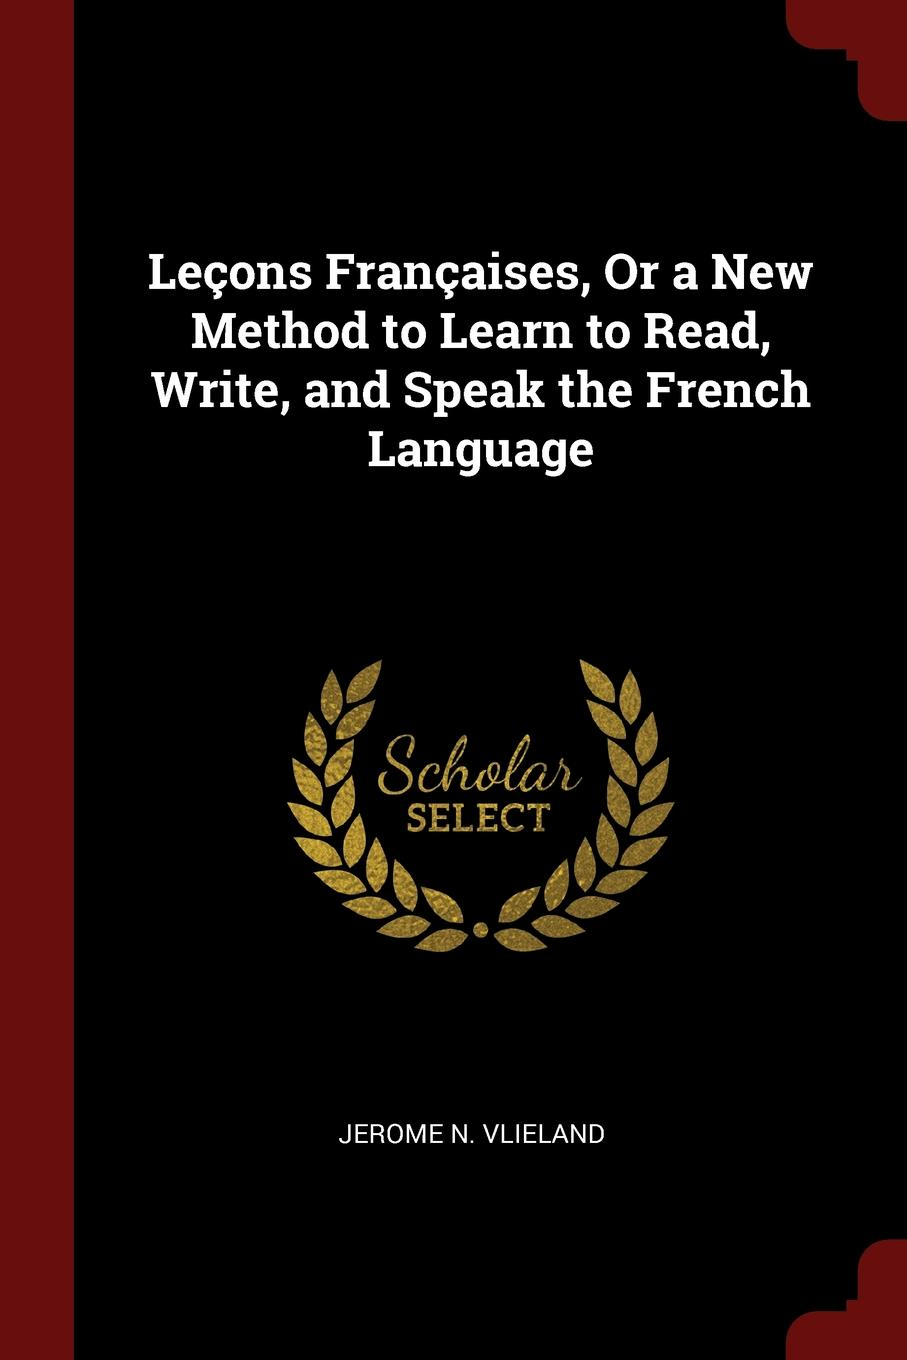 Lecons Francaises, Or a New Method to Learn to Read, Write, and Speak the French Language. Jerome N. Vlieland